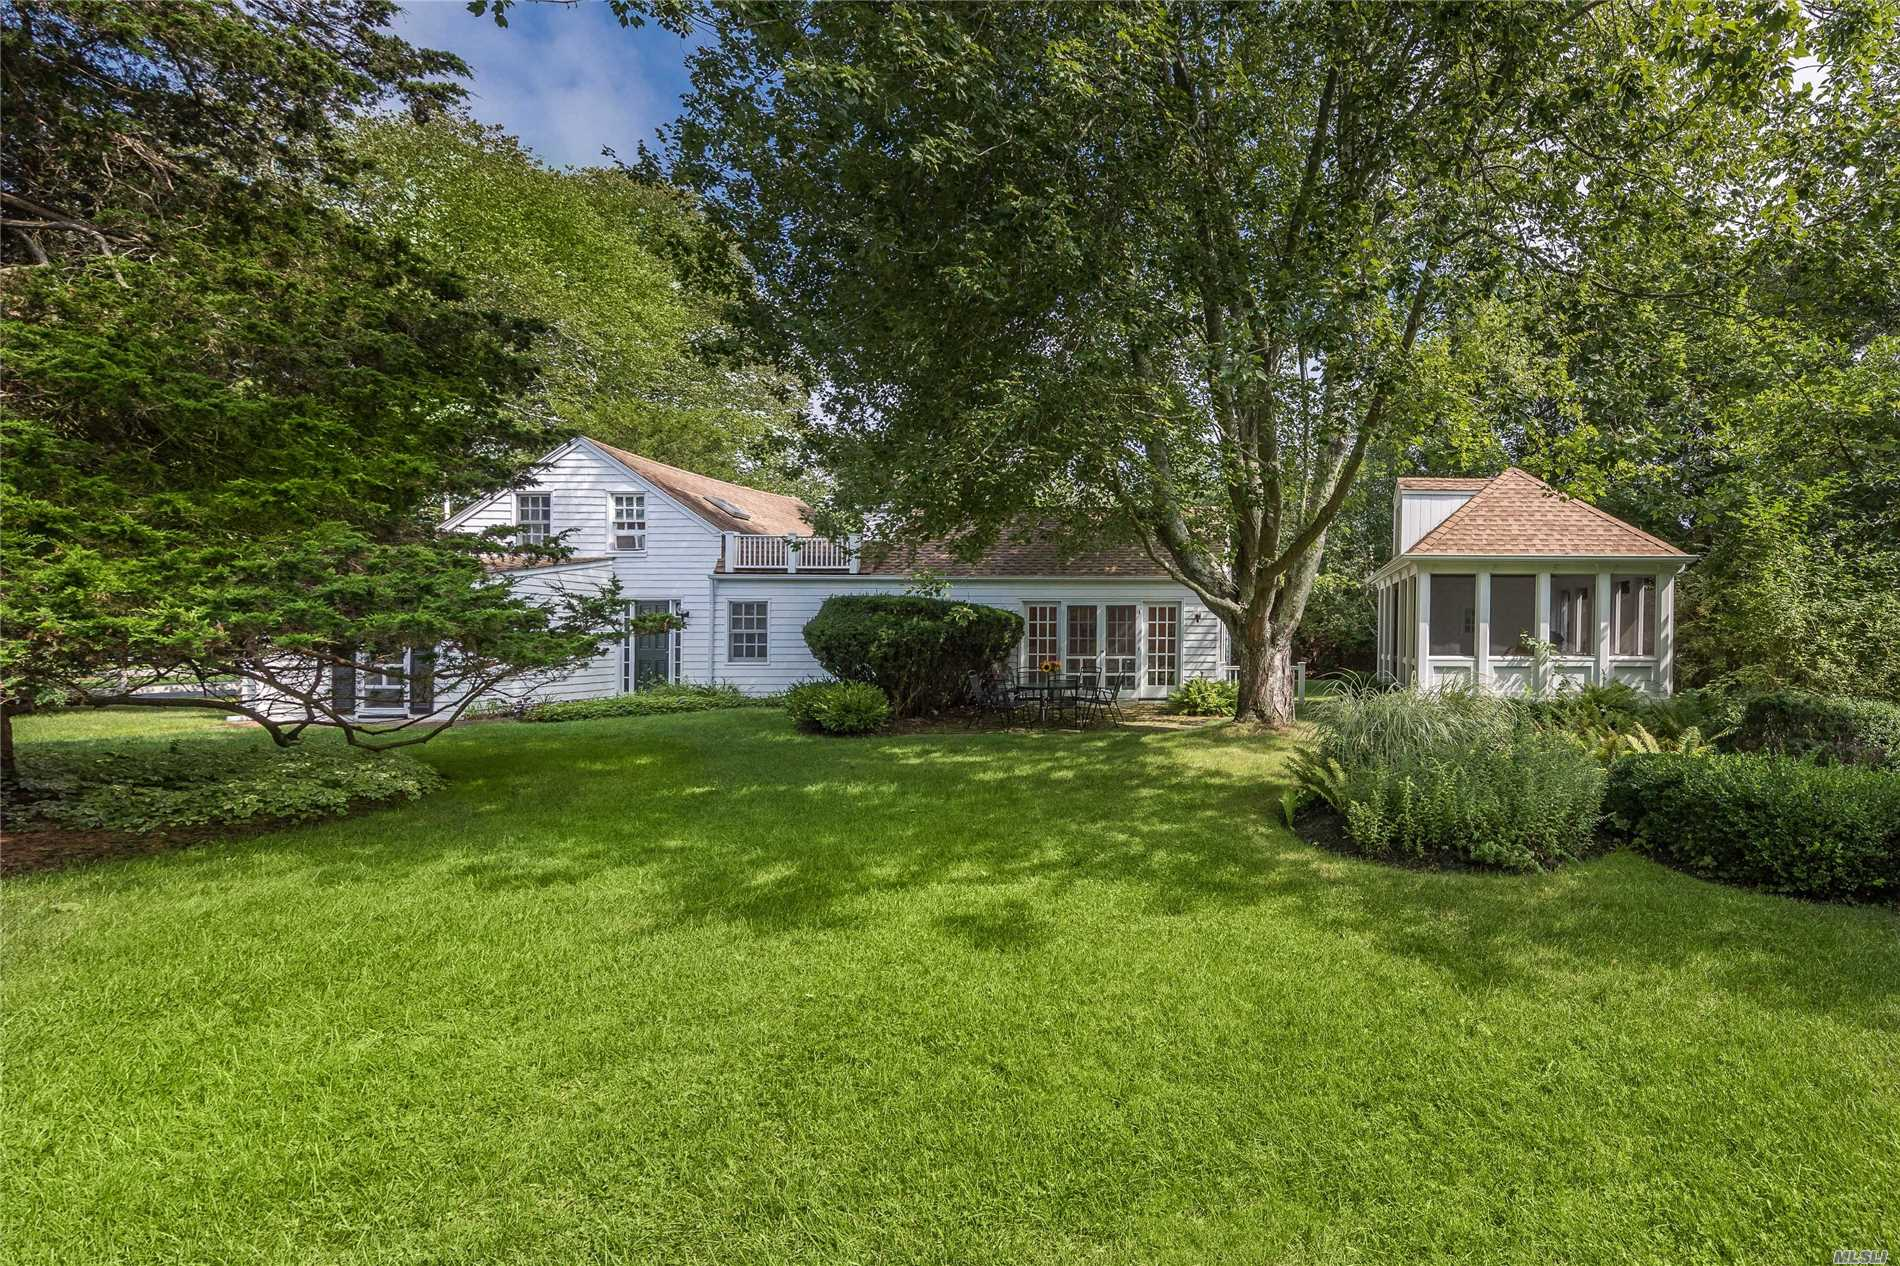 Charming Farmhouse In Westhampton. 3 Bedroom, 2 Bath Home Sited On 7/10 Of An Acre. Outdoor Pavilion Provides The Ultimate Setting For Warm Weather Entertaining Or Quiet Relaxation. This Easy Living Sized Property Offers Room For Pool. Conveniently Located Just Moments From Hamptons Beaches.